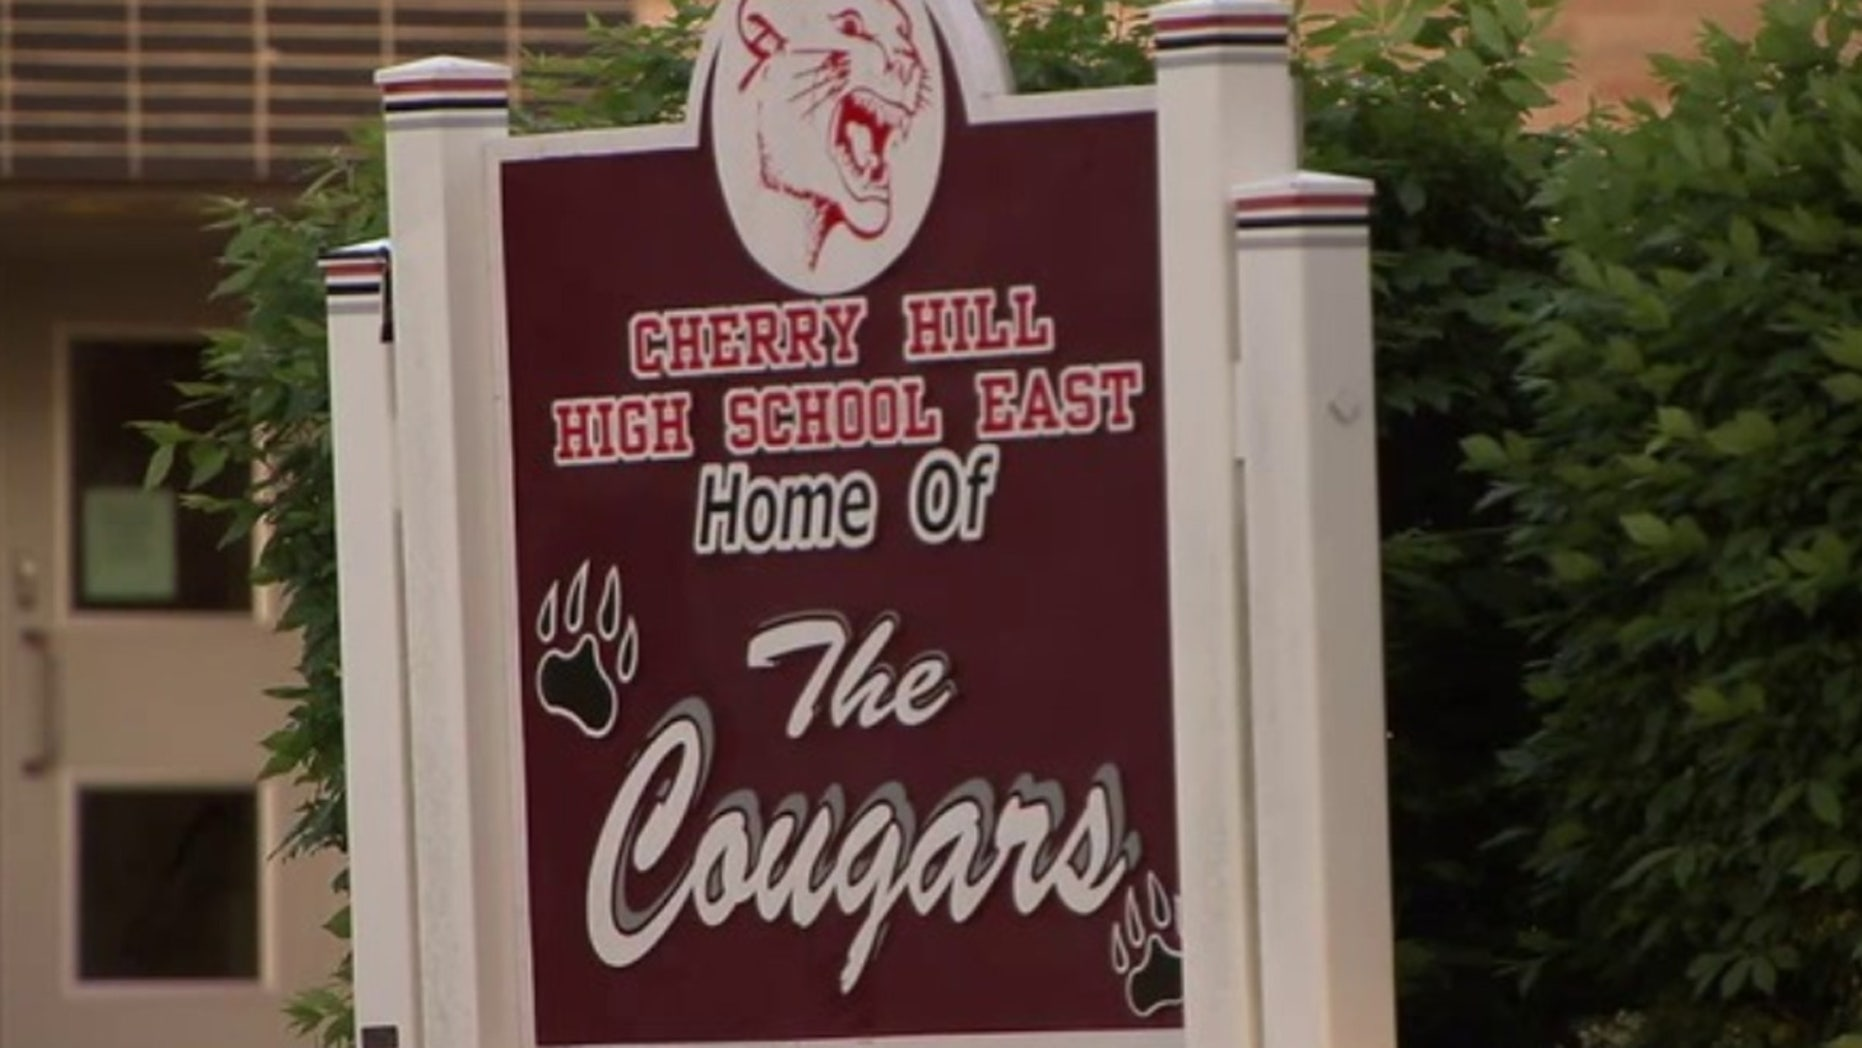 Cherry Hill High School announced it will send out new tickets without the 1776 reference.